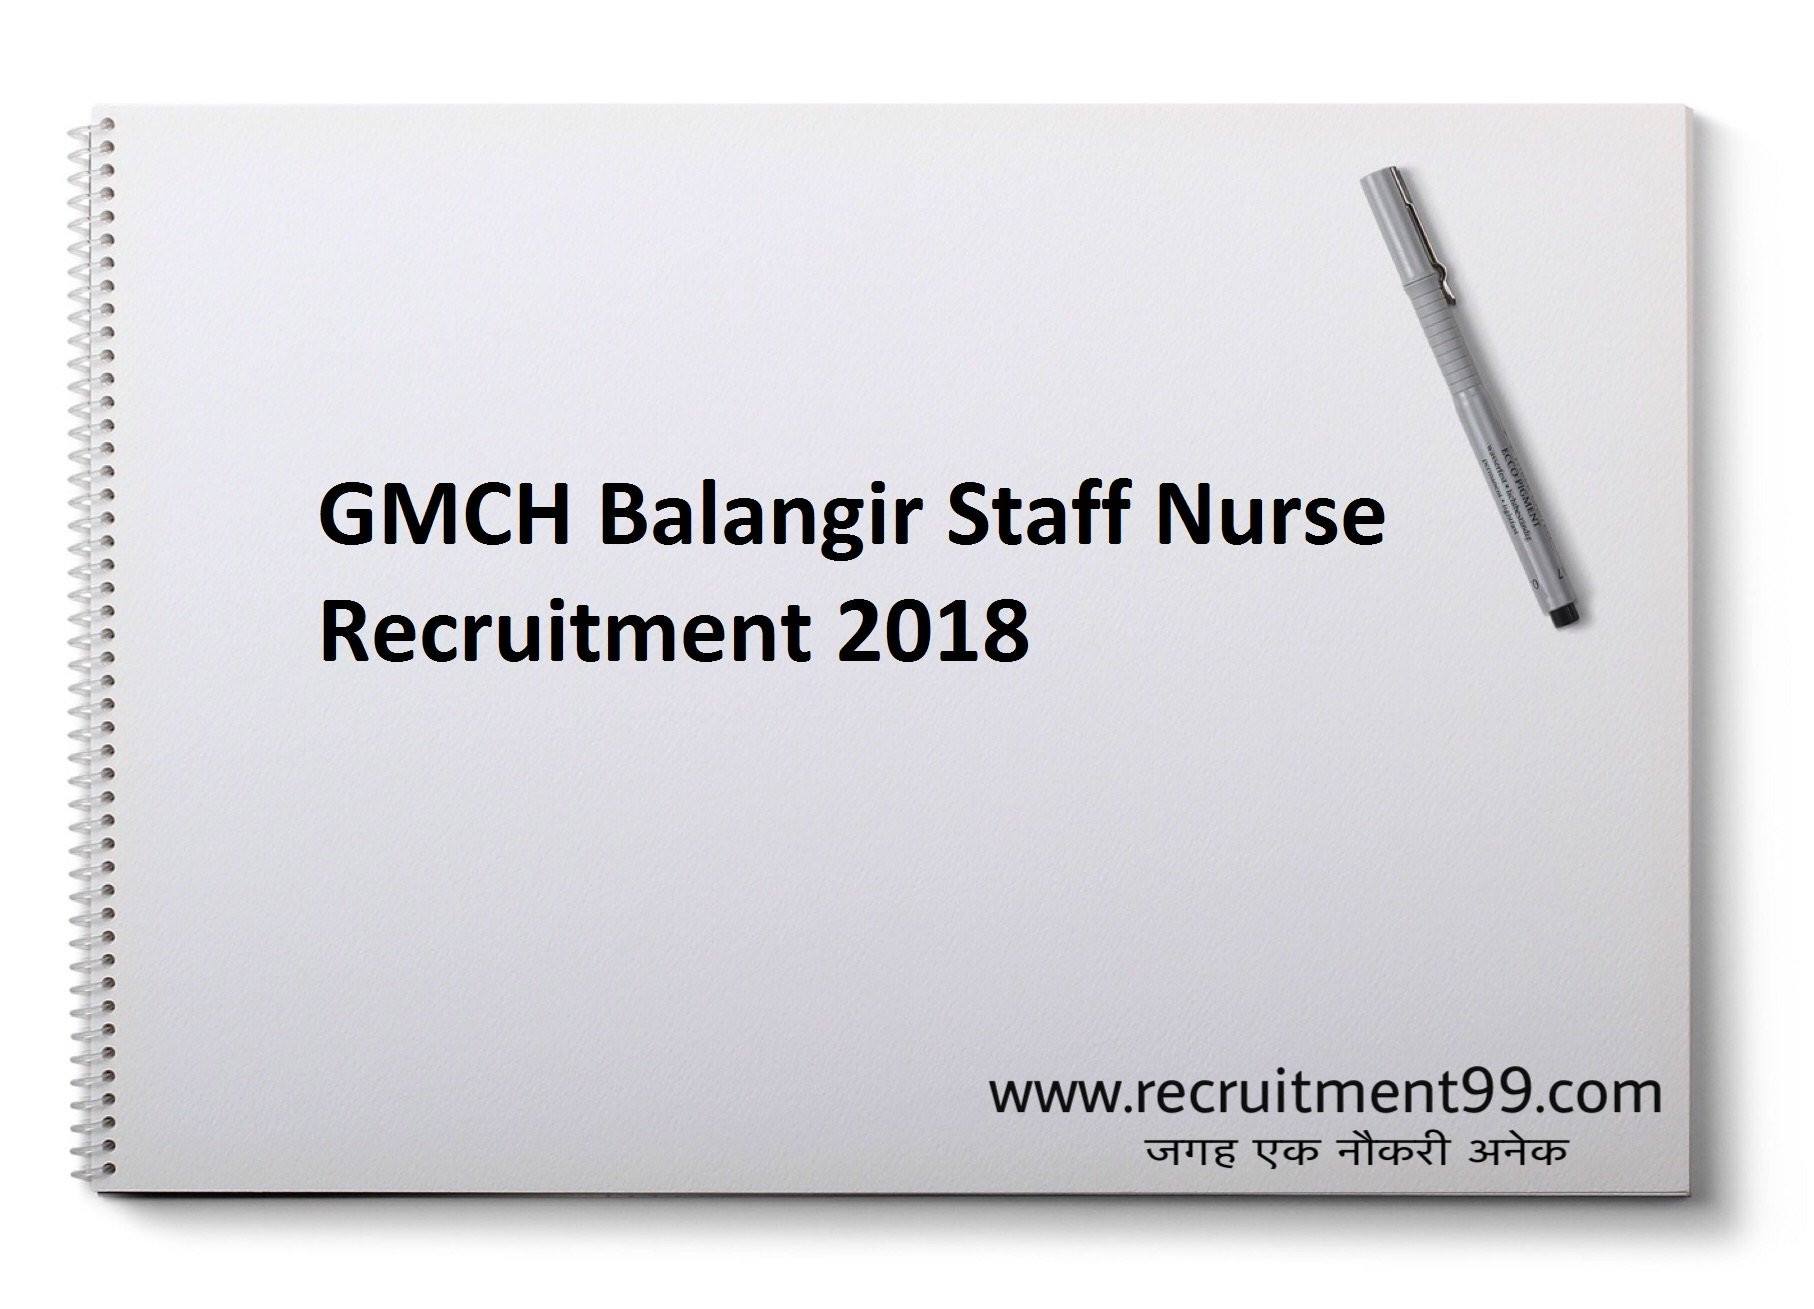 GMCH Balangir Staff Nurse Recruitment Admit Card Result 2018